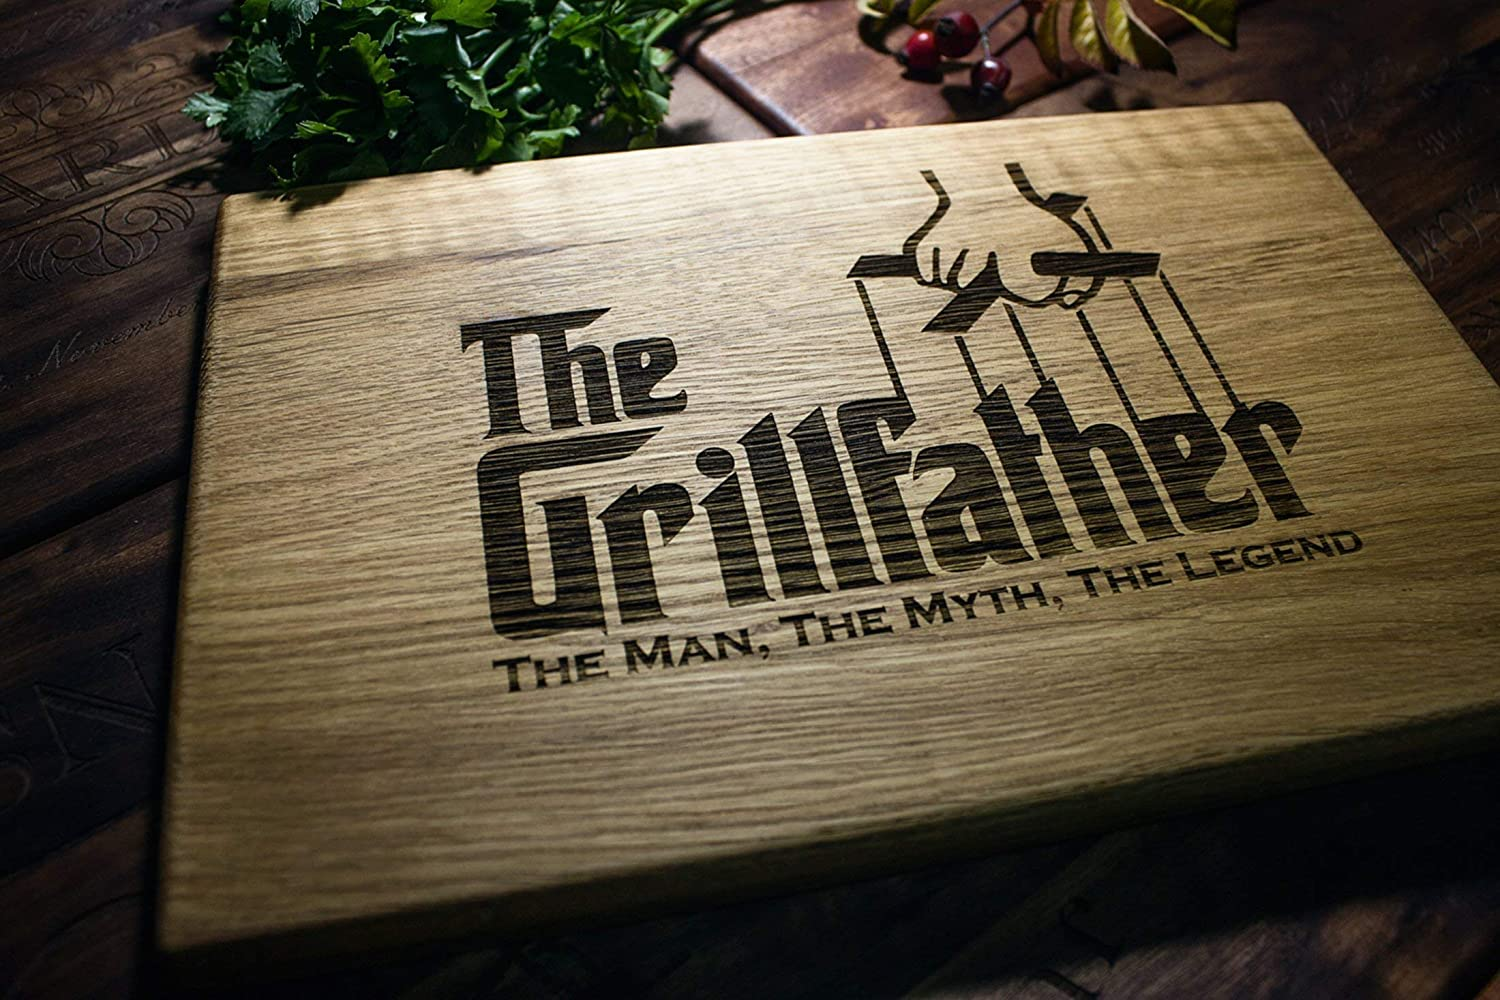 The Grill Father BBQ Dad gift Personalized Engraved Cutting Board- Wedding Gift, Anniversary Gifts, Housewarming Gift, Birthday Gift, Corporate Gift, Fathers day gift the grillfather